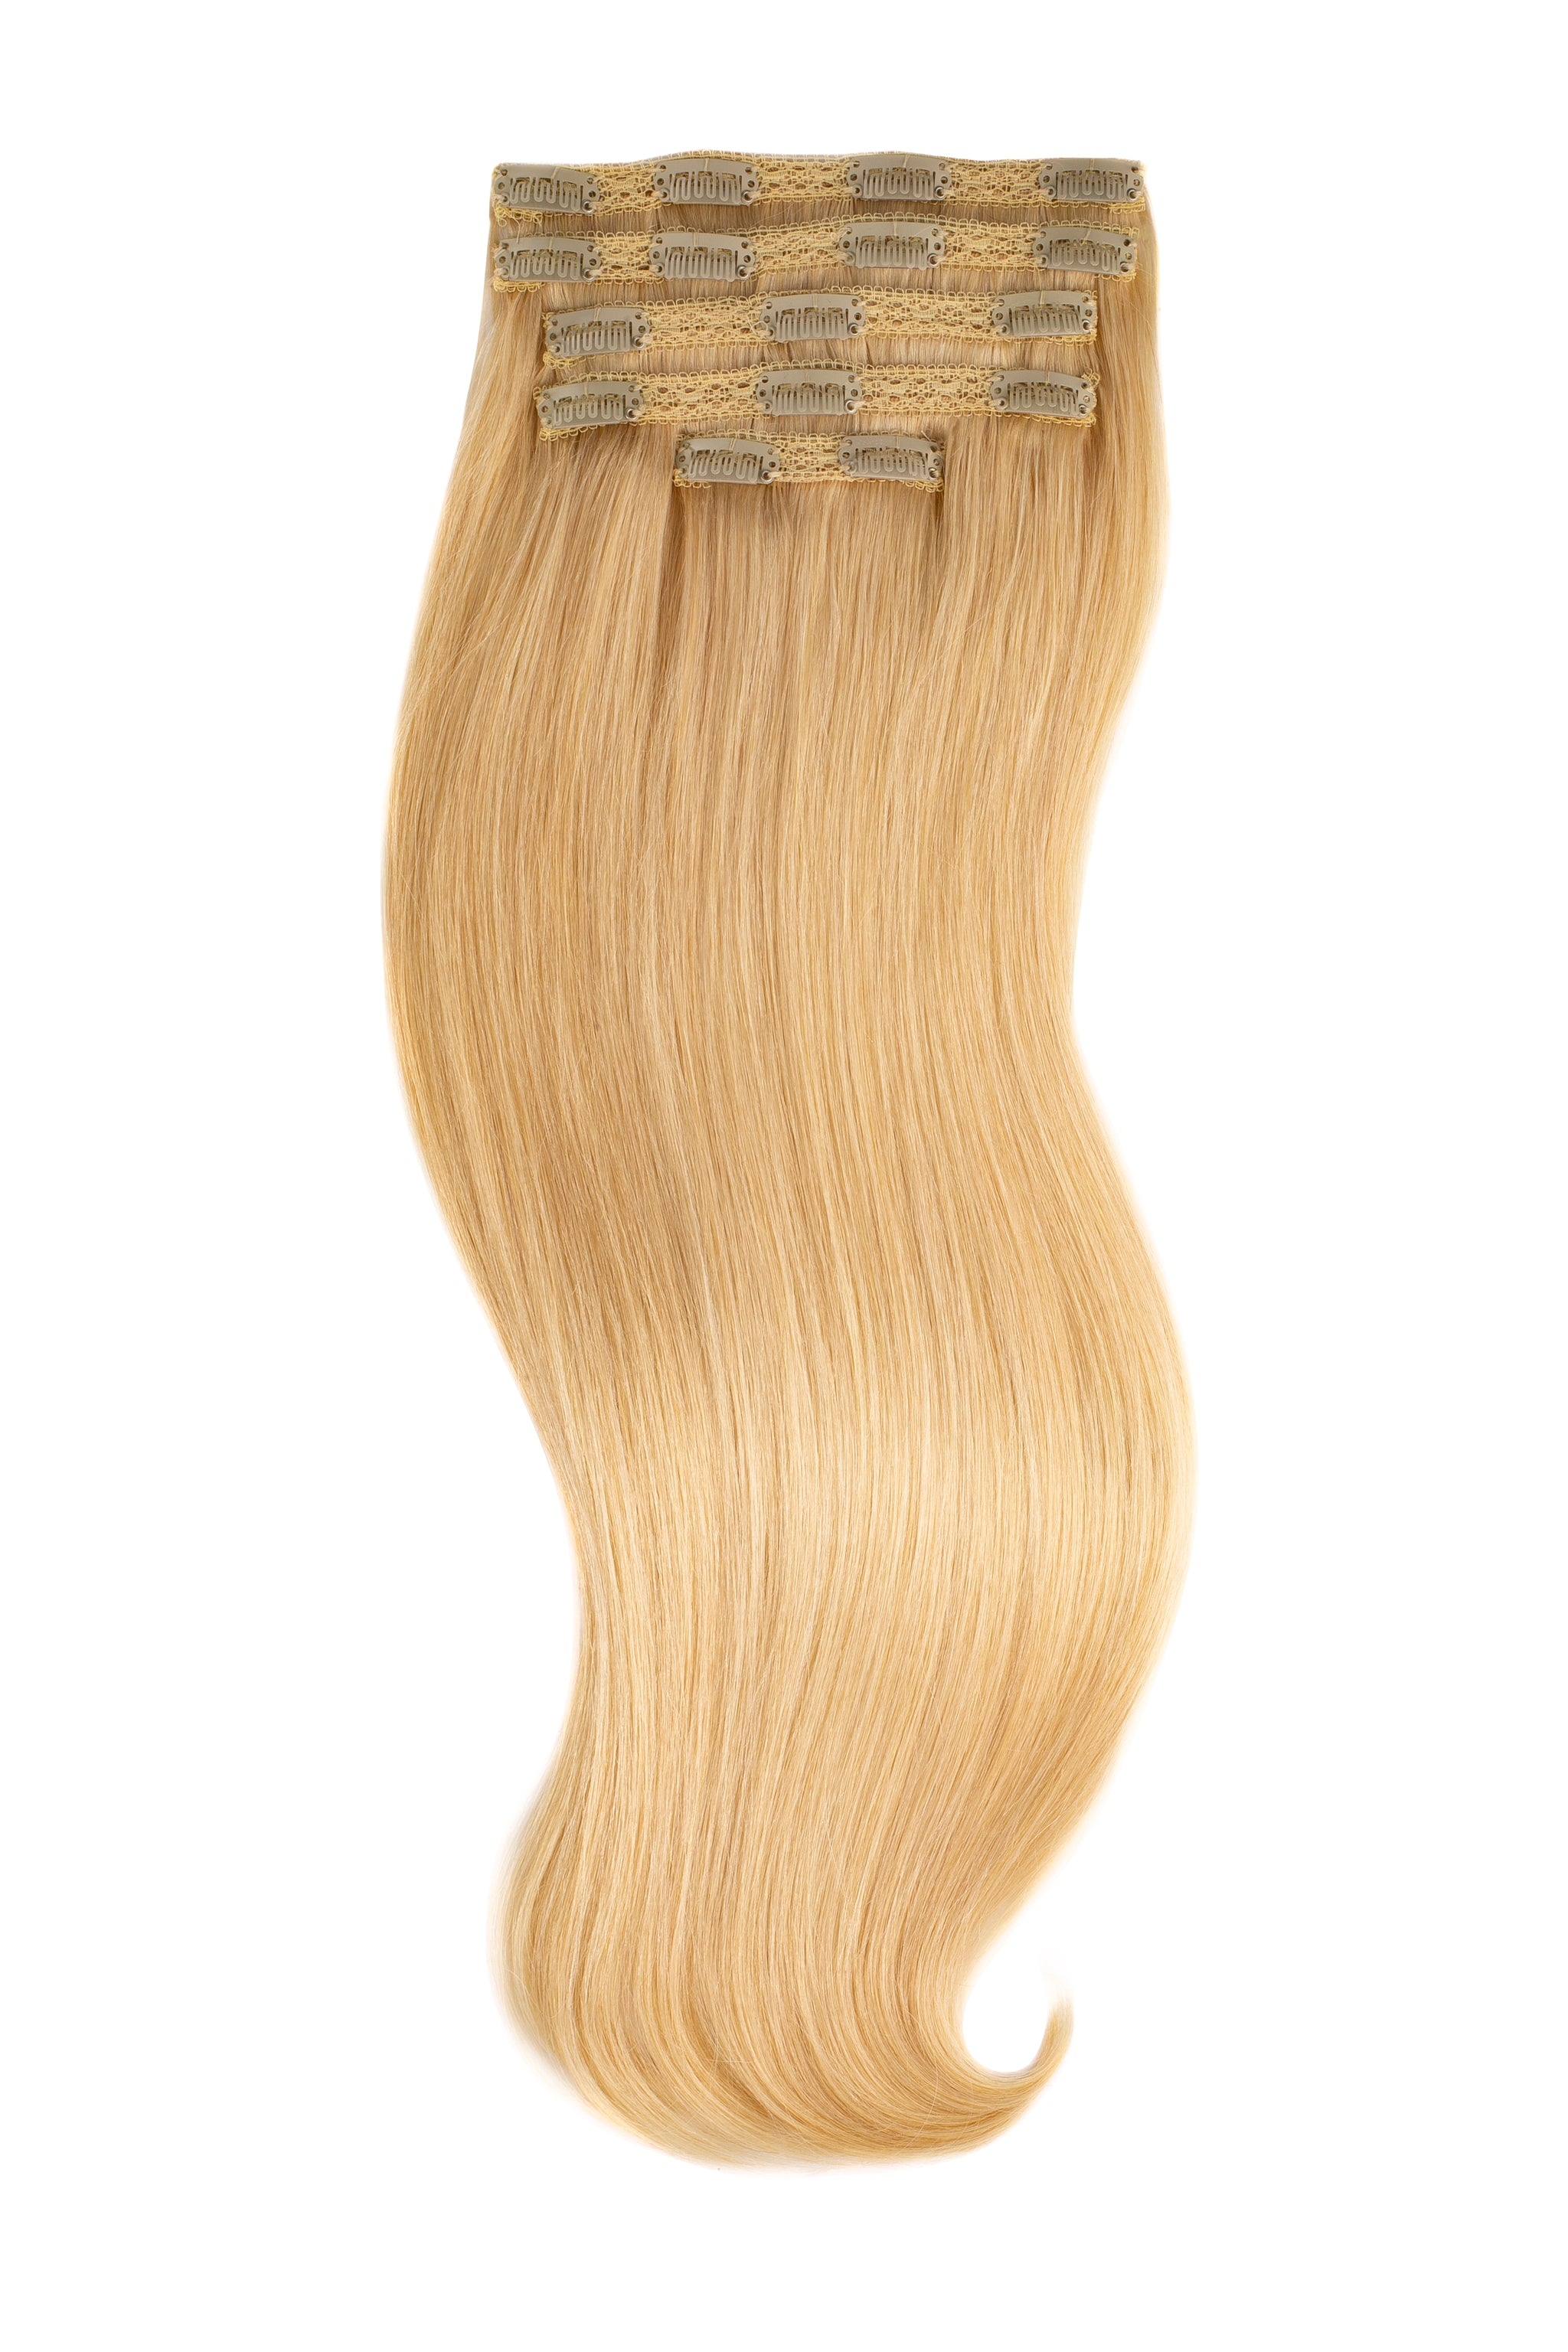 24G Naturally Glam Lace Clip Ins